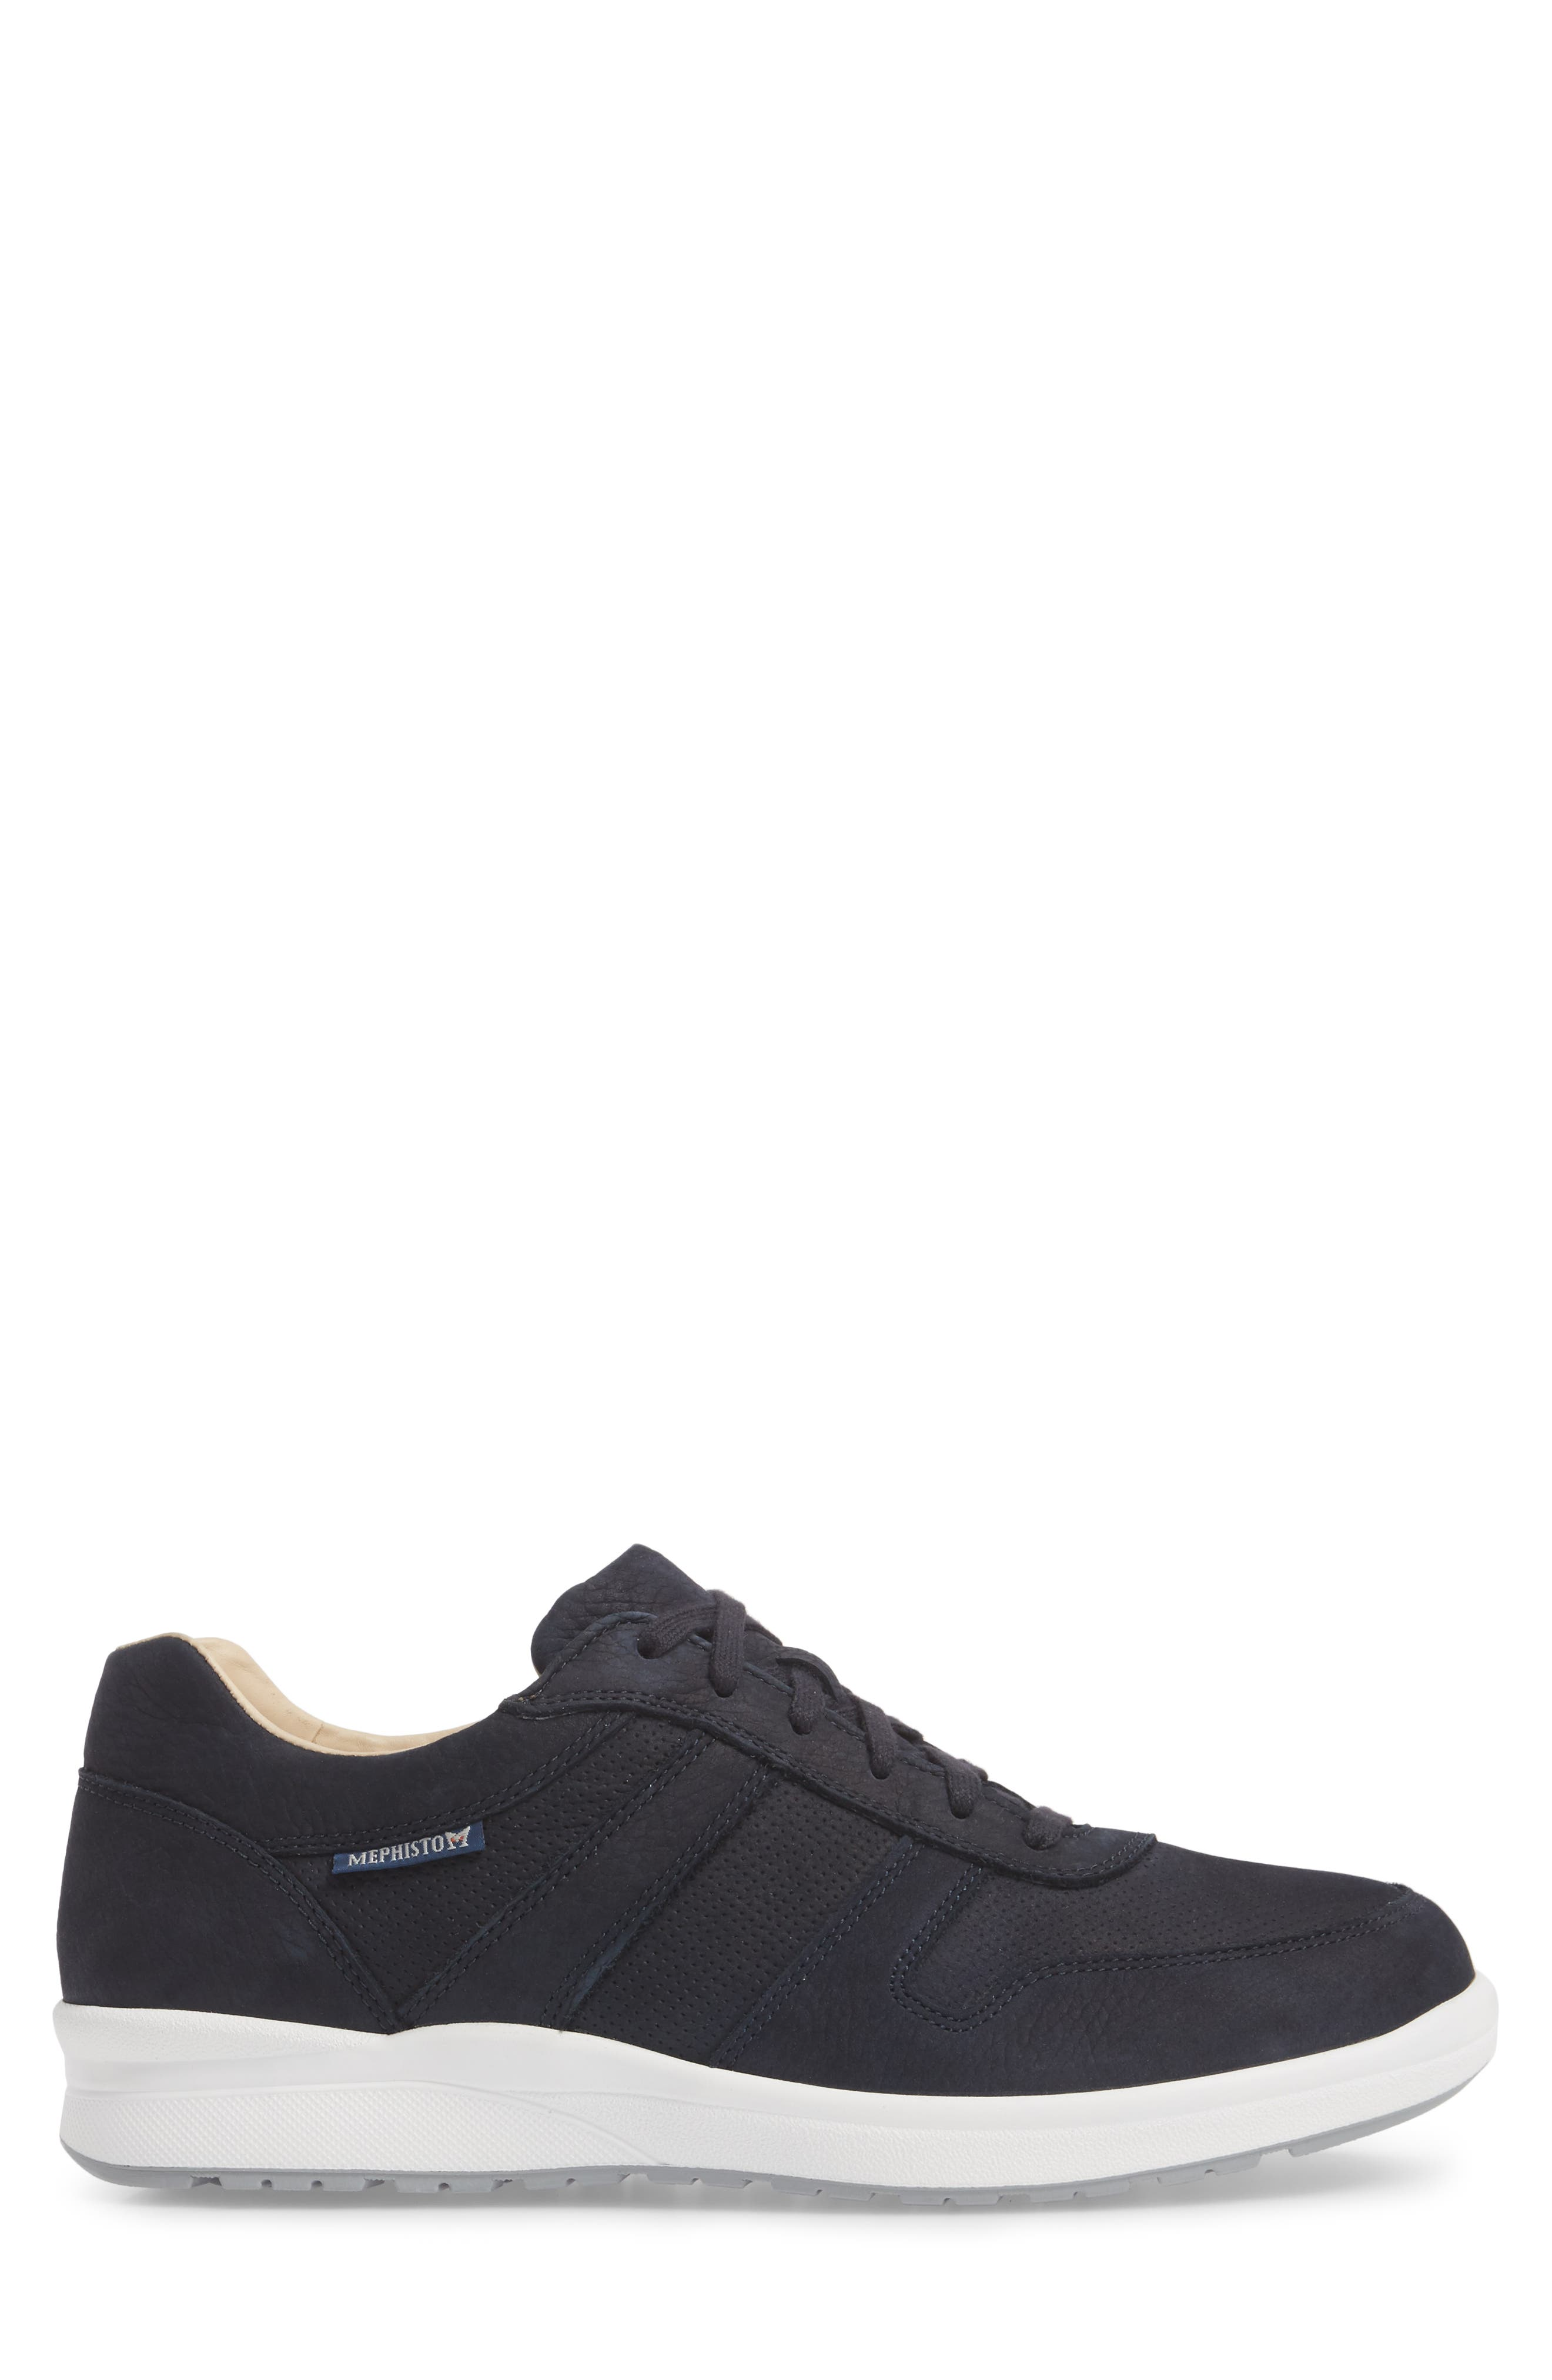 Vito Perforated Sneaker,                             Alternate thumbnail 3, color,                             NAVY